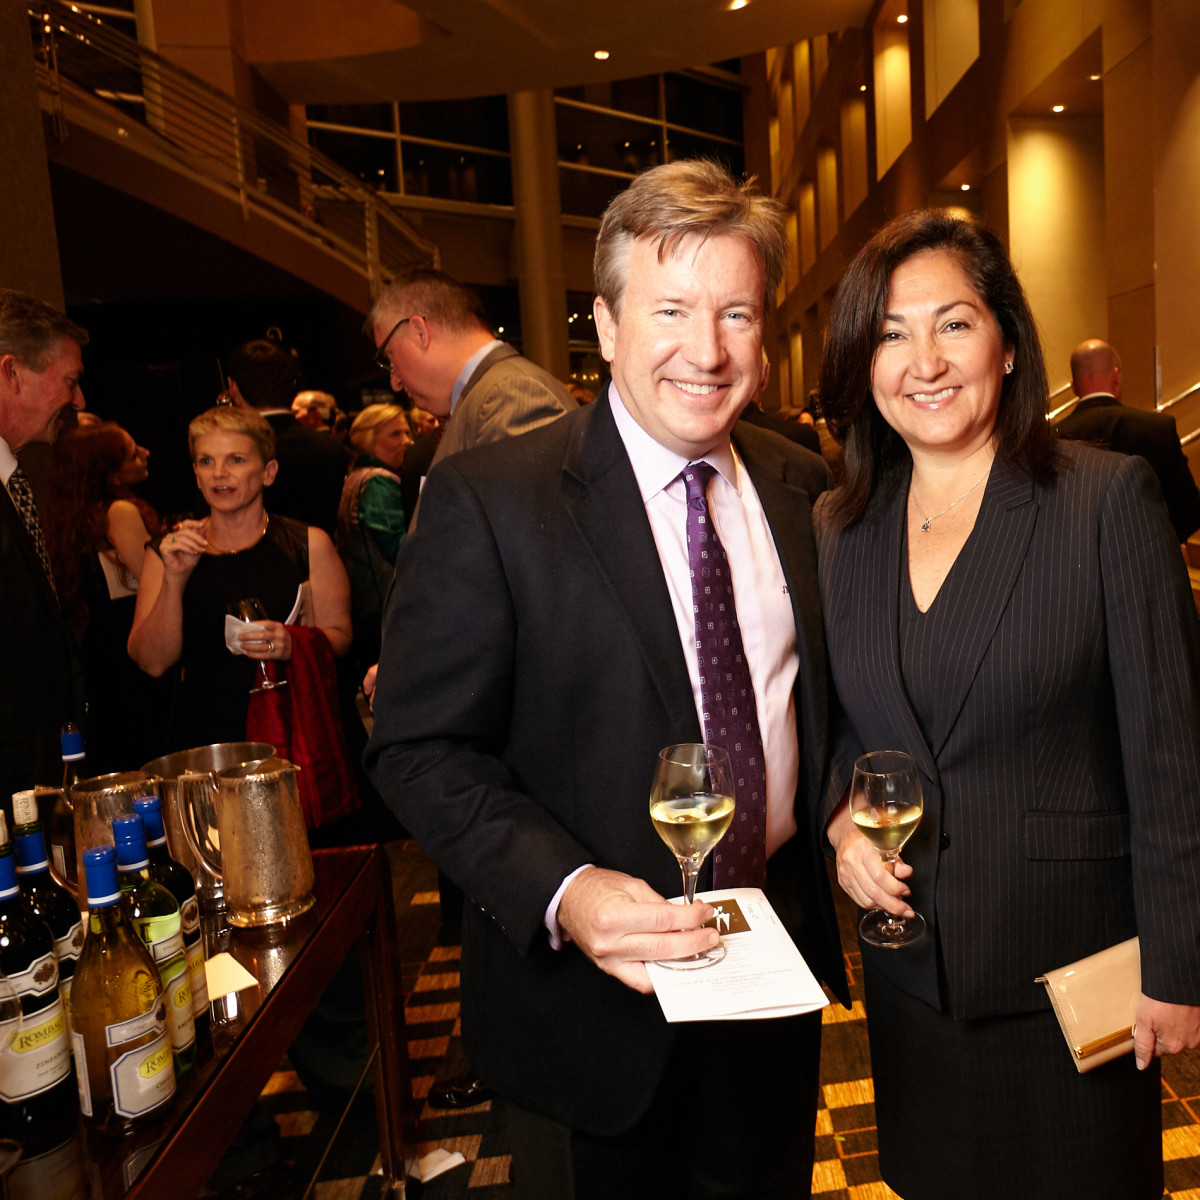 Houston, Bush Library Foundation dinner, November 2017, Paulina McGrath, Jim McGrath